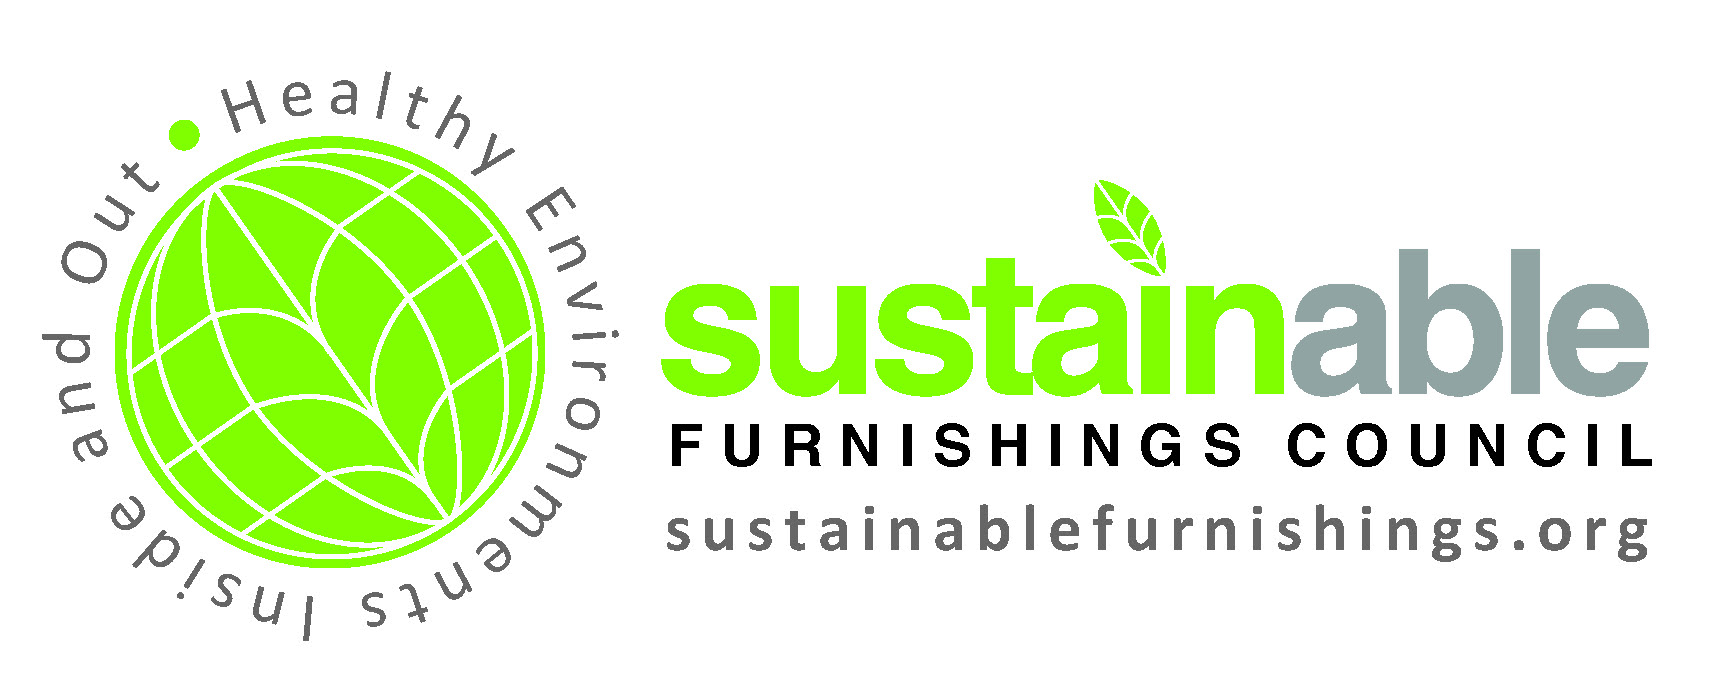 Sustainable Furnishings Council